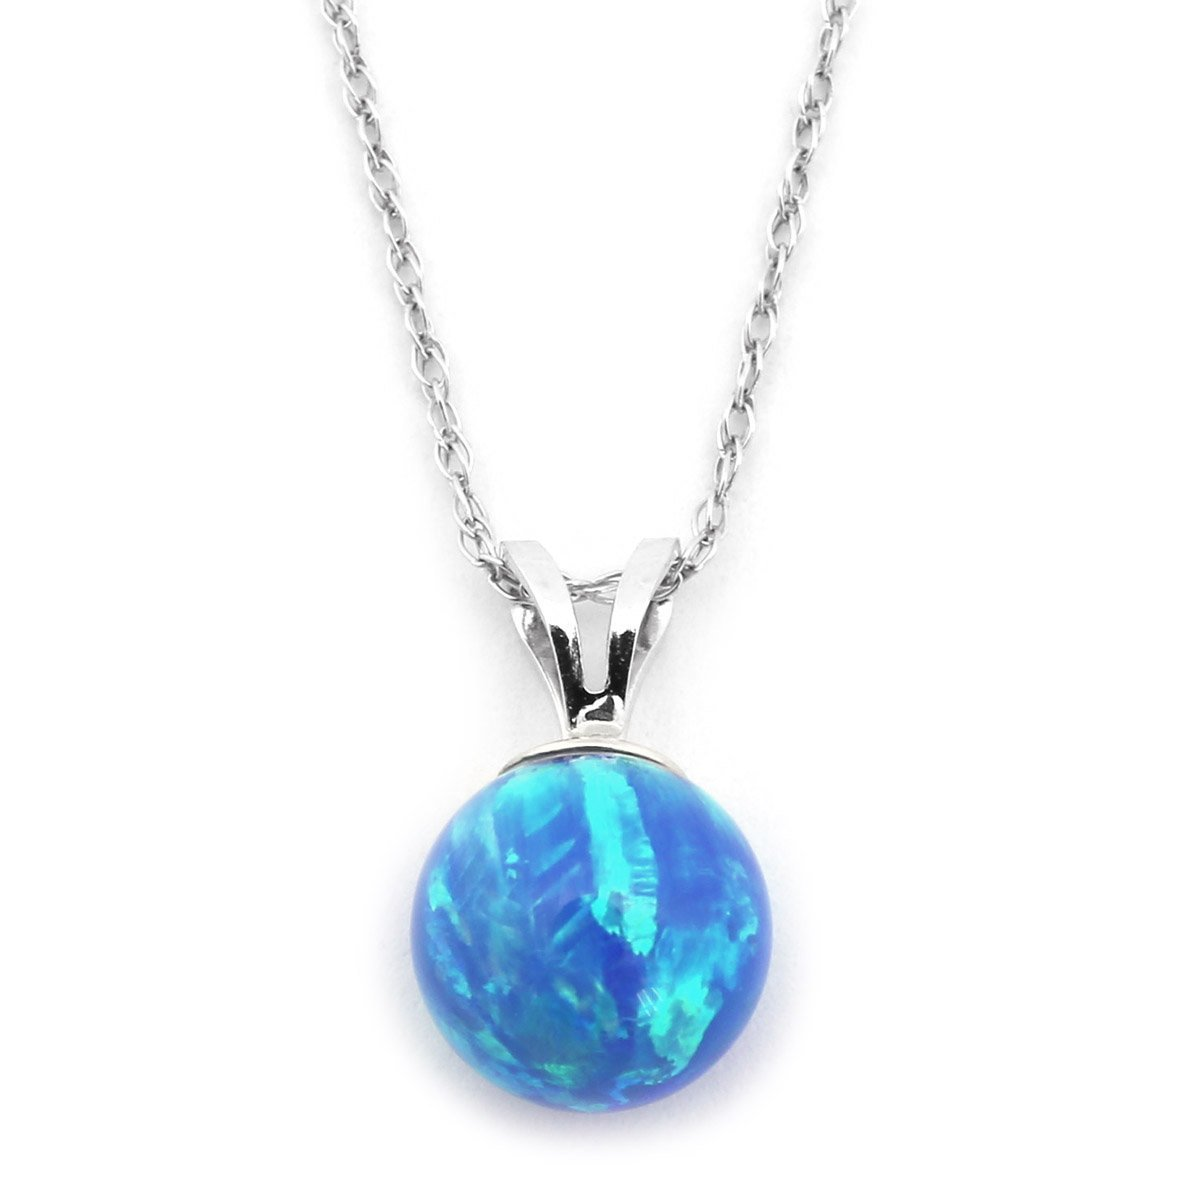 14k Yellow or White Gold 10 Millimeter Blue Simulated Opal Pendant Necklace